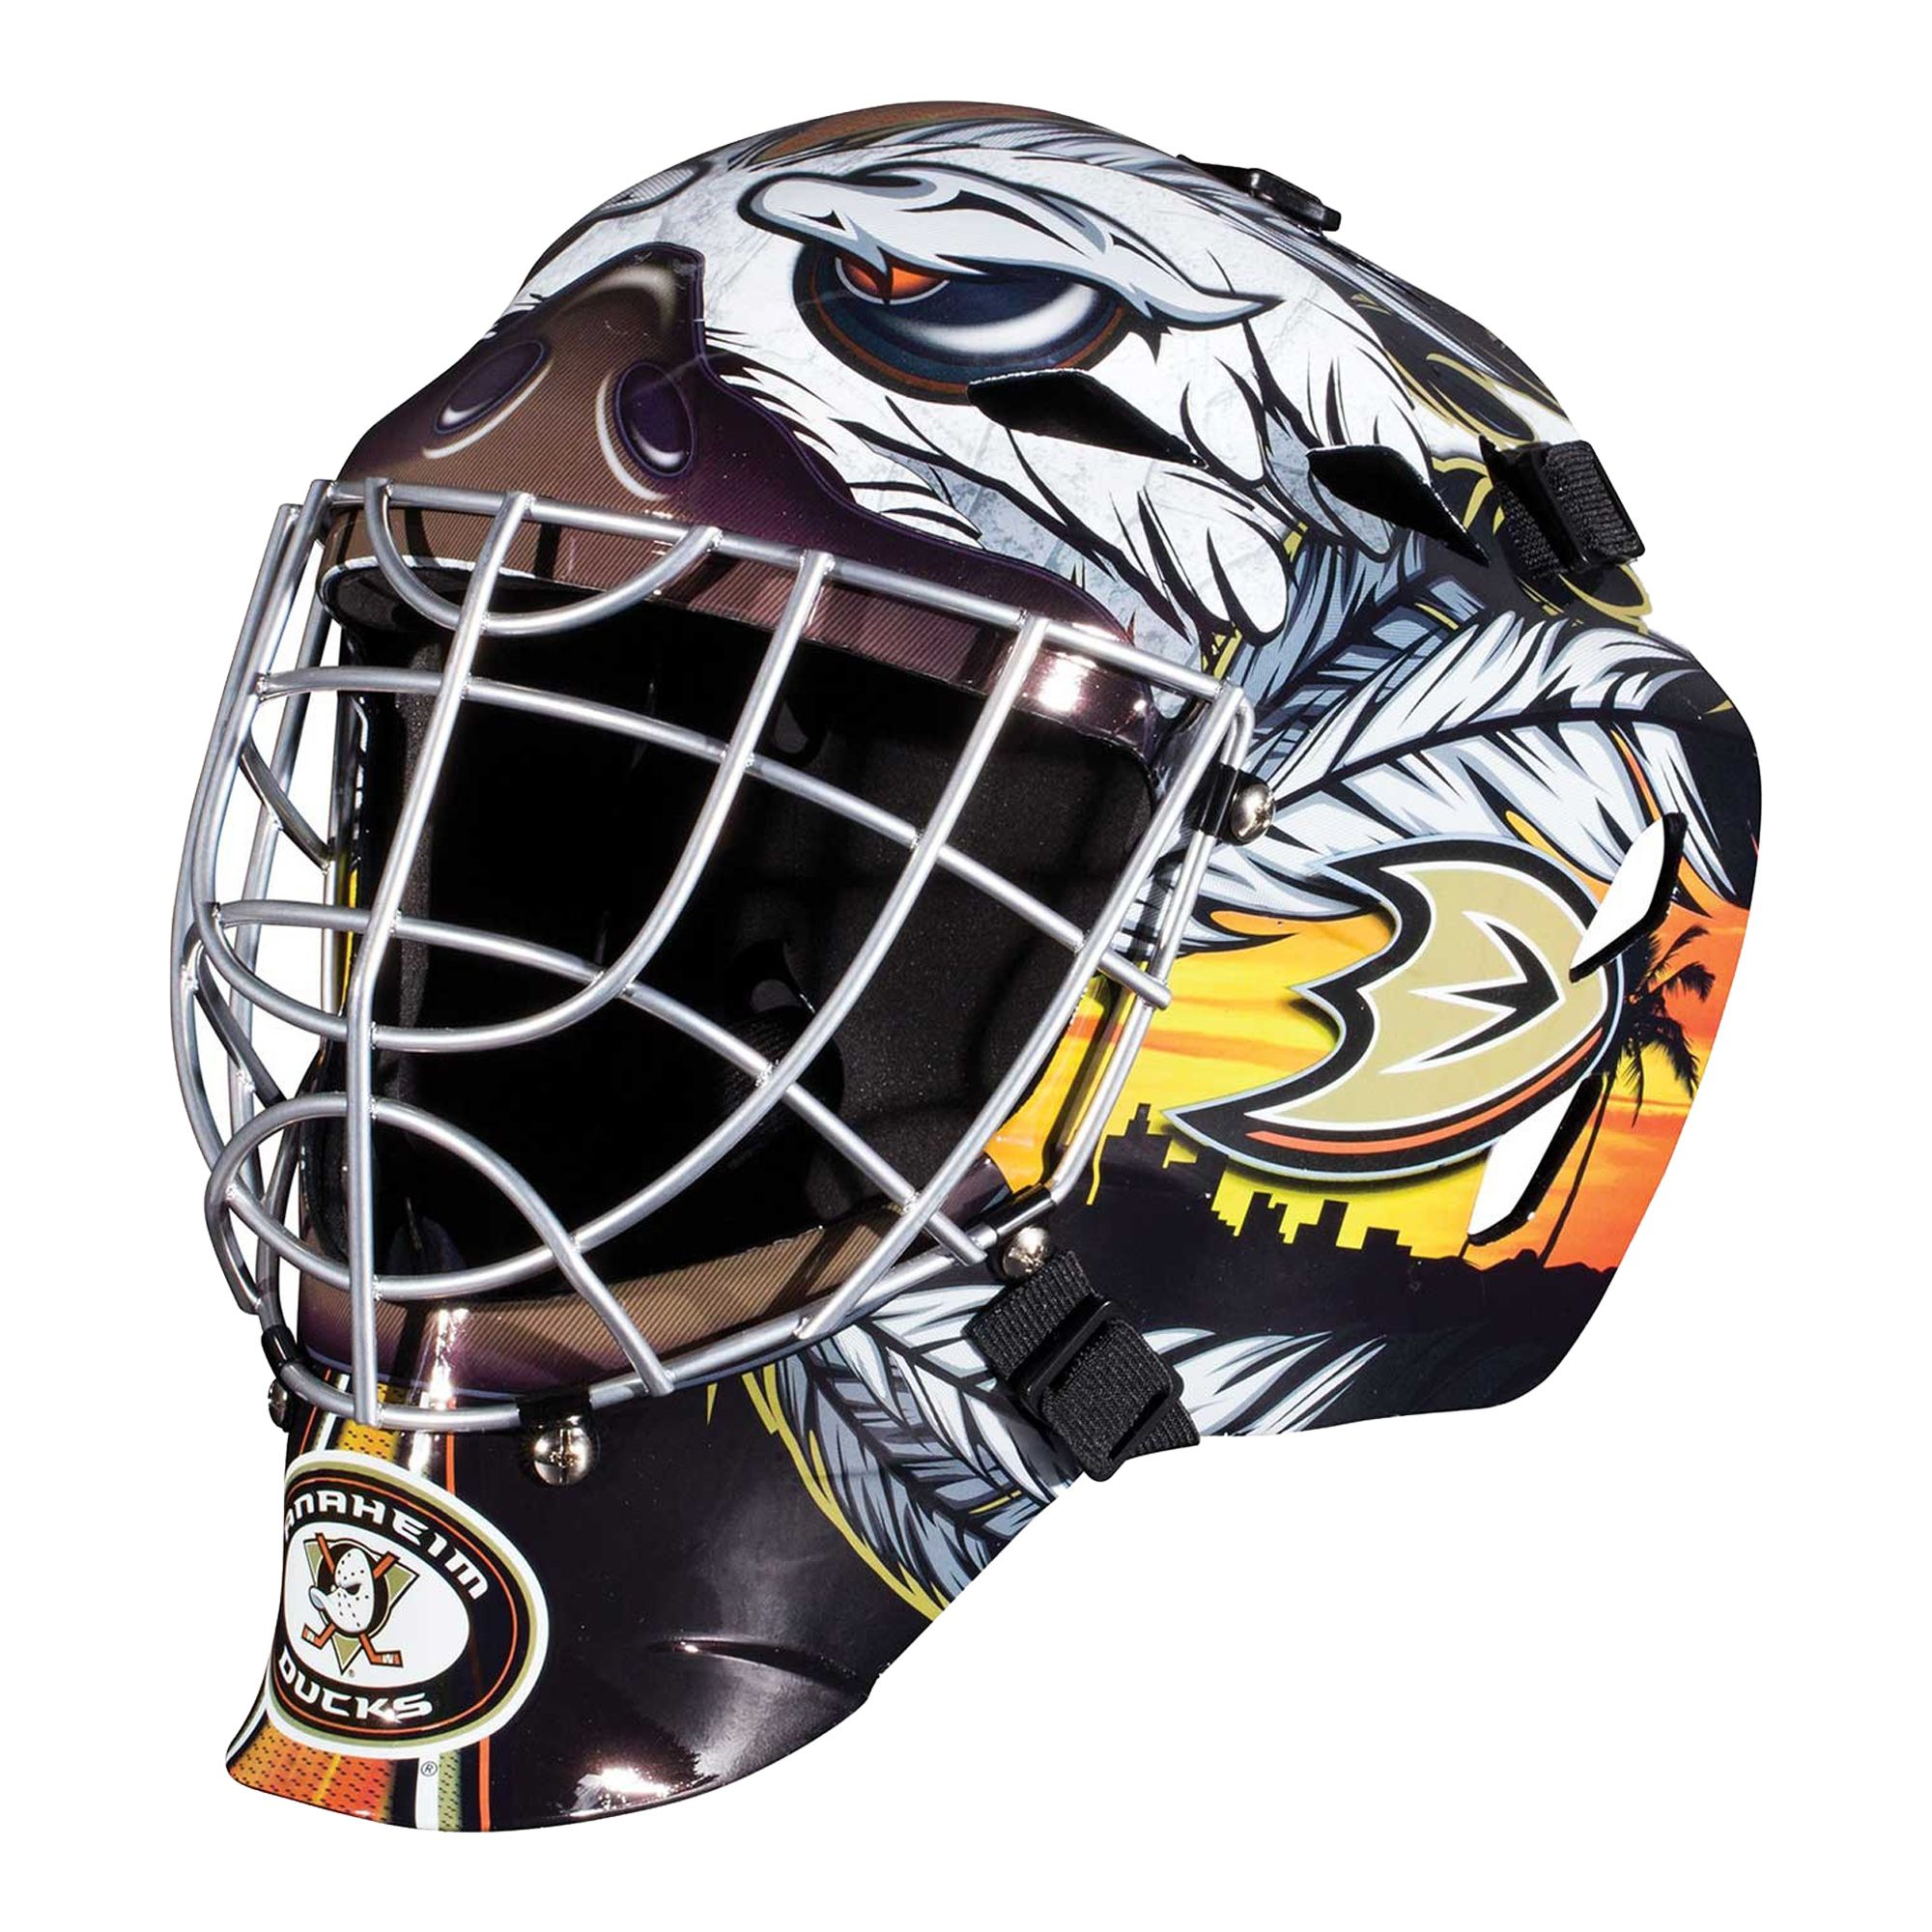 Nhl Anaheim Ducks Replica Goalie Mask Street Hockey Franklin Sports Anaheim Ducks